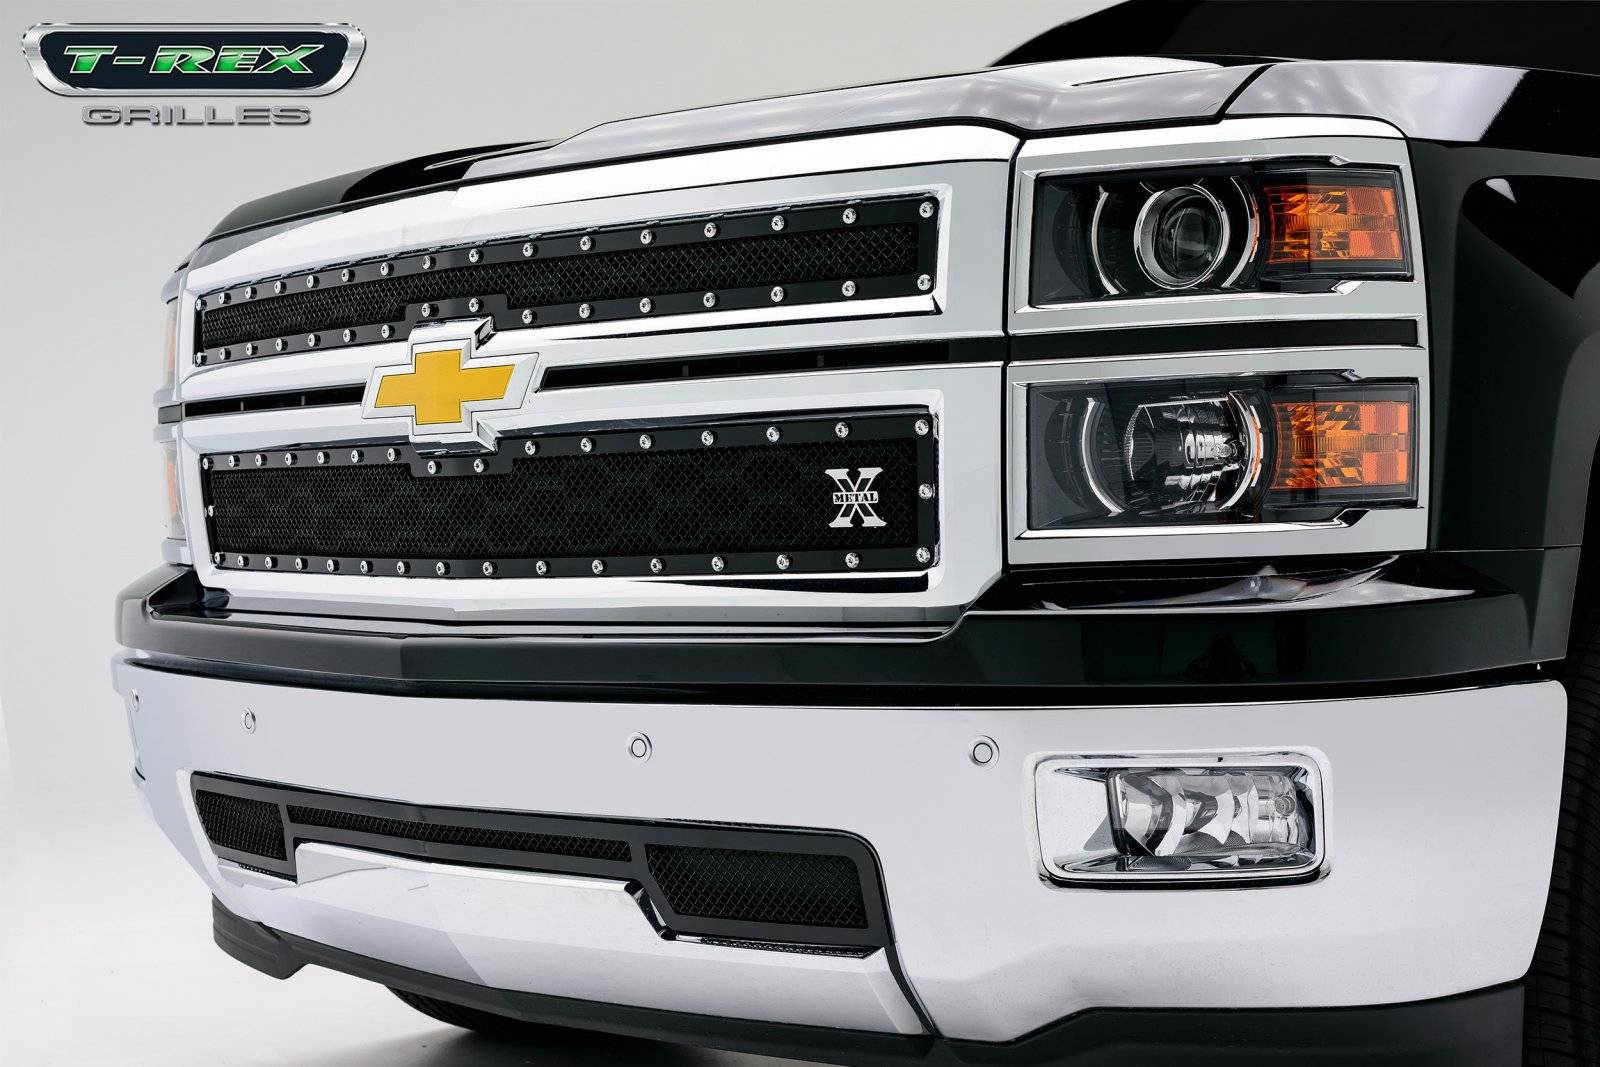 Chevrolet Silverado X-METAL Series - Studded Main Grille - ALL Black - 2 Pc Style - Pt # 6711171